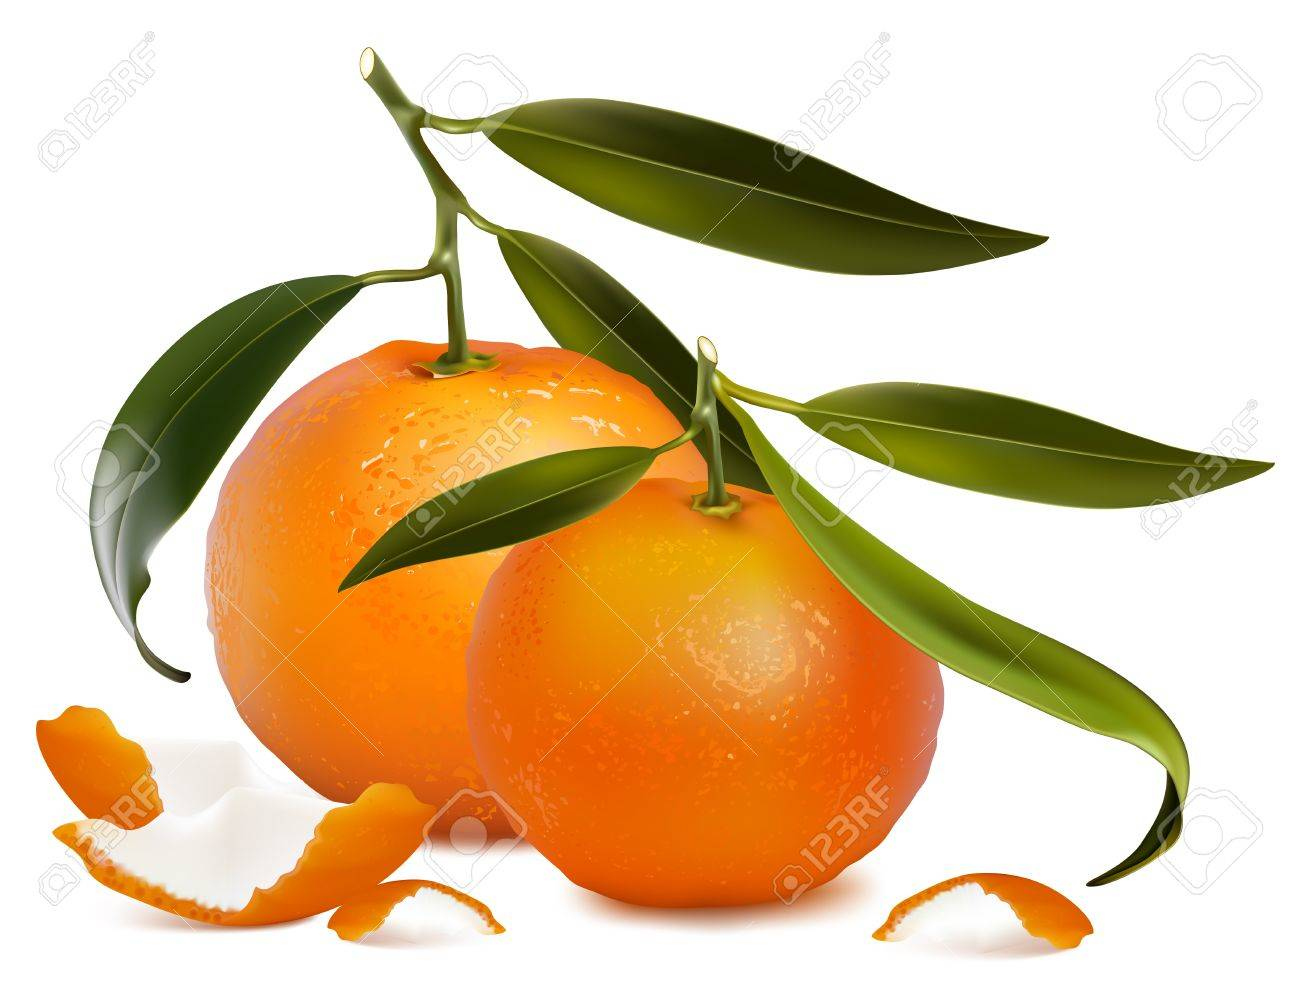 Photo-realistic vector. Fresh tangerine fruits with green leaves and tangerine peel. - 10053521